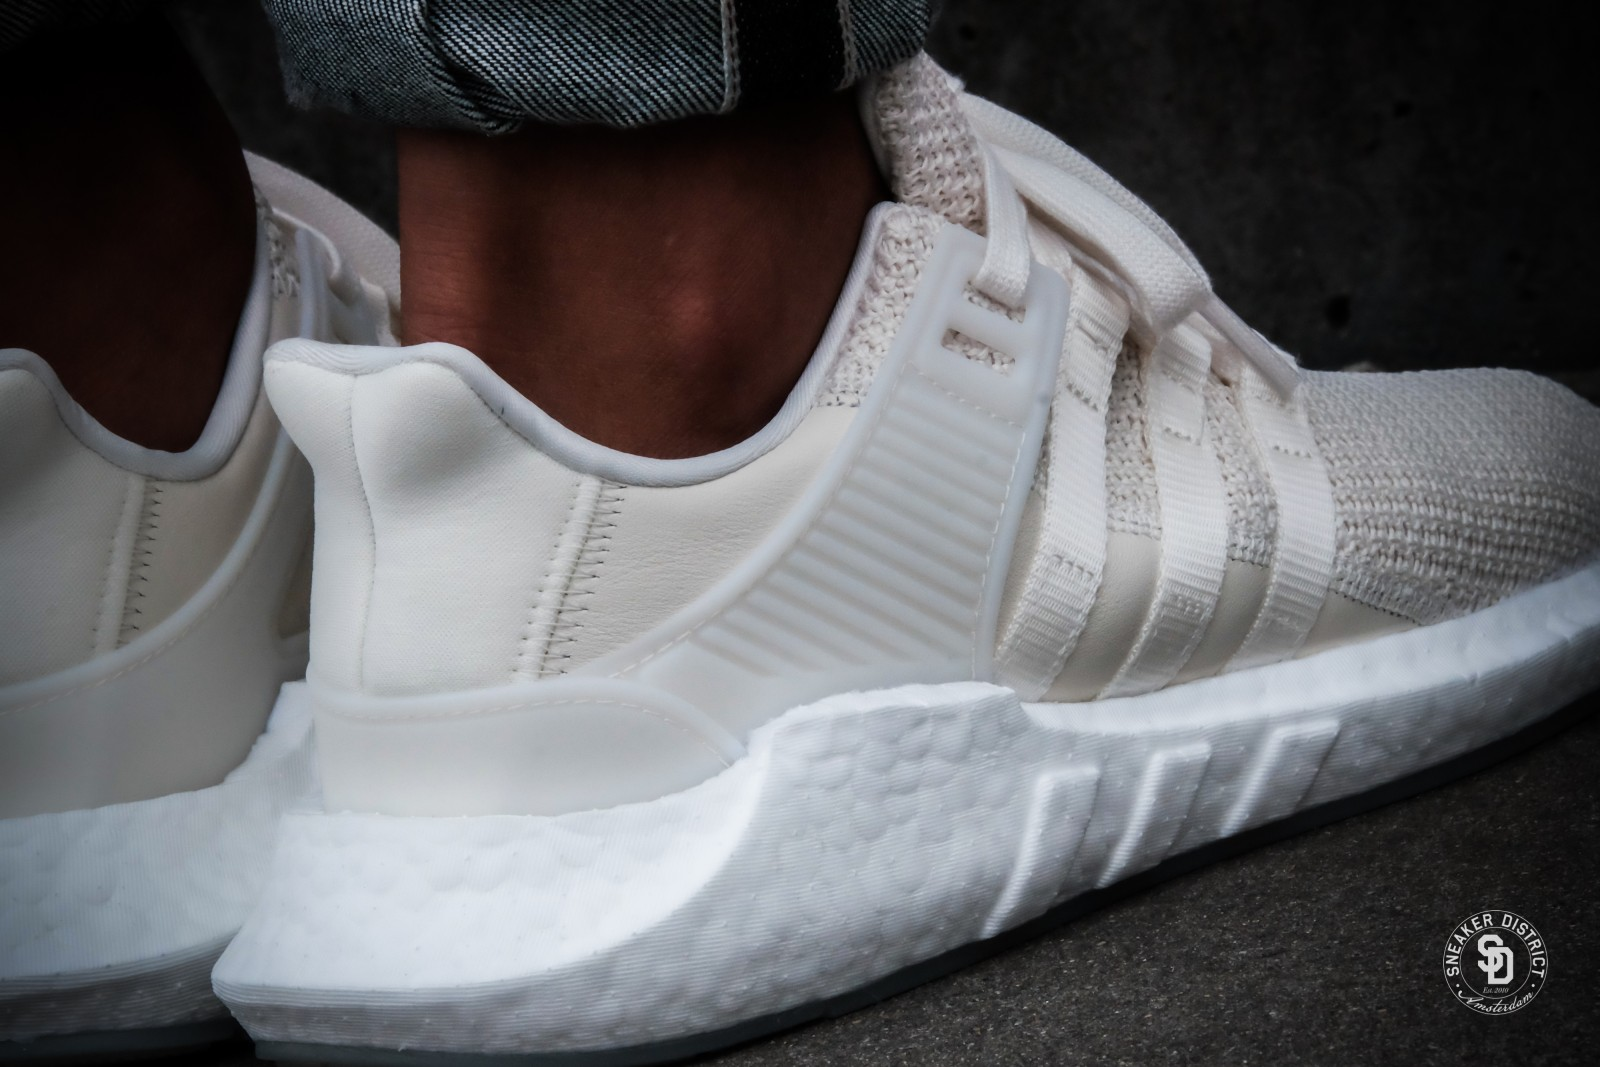 Adidas Eqt Support 93 17 Off White Footwear White Bz0586